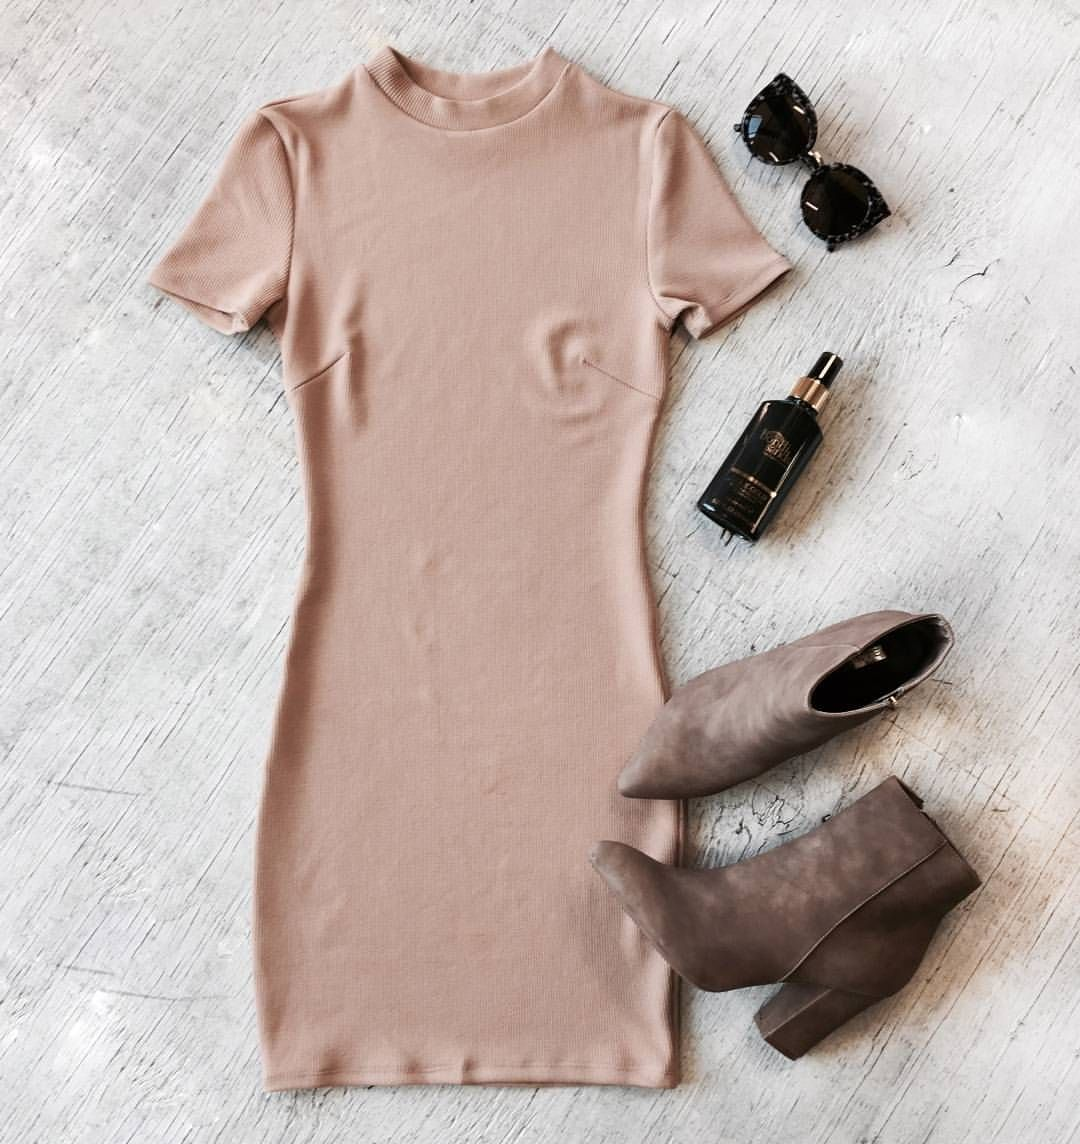 """PRINCESS POLLY on Instagram: """"● TONAL ● Get Kimmy's Yeezy Vibes in the McPherson Dress + Taupe Shea Boots + Liquid Gold by @BondiSands ✔️ All in the Instashop now✔️"""""""